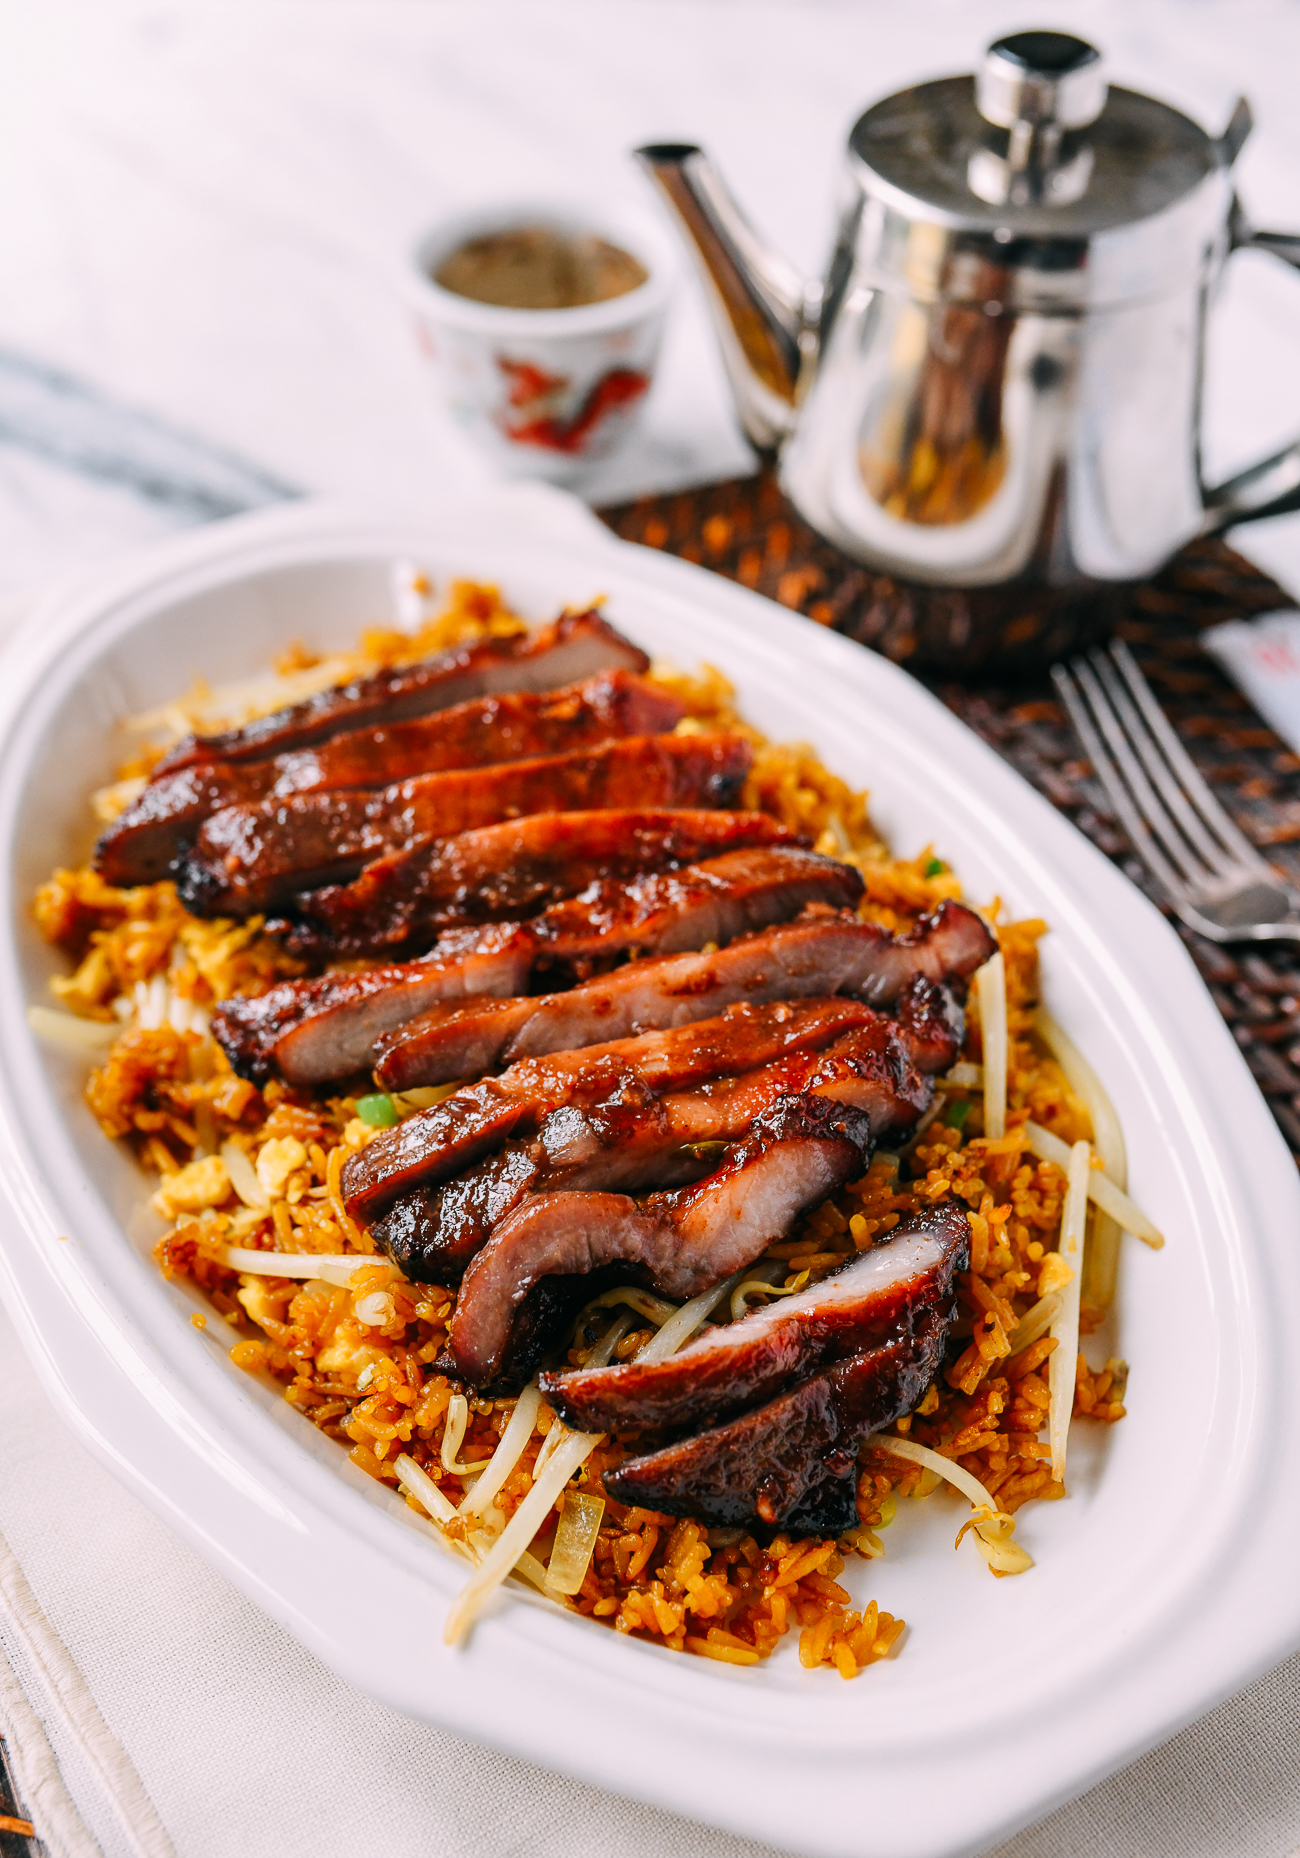 Plate of Chinese takeout boneless spare ribs with fried rice